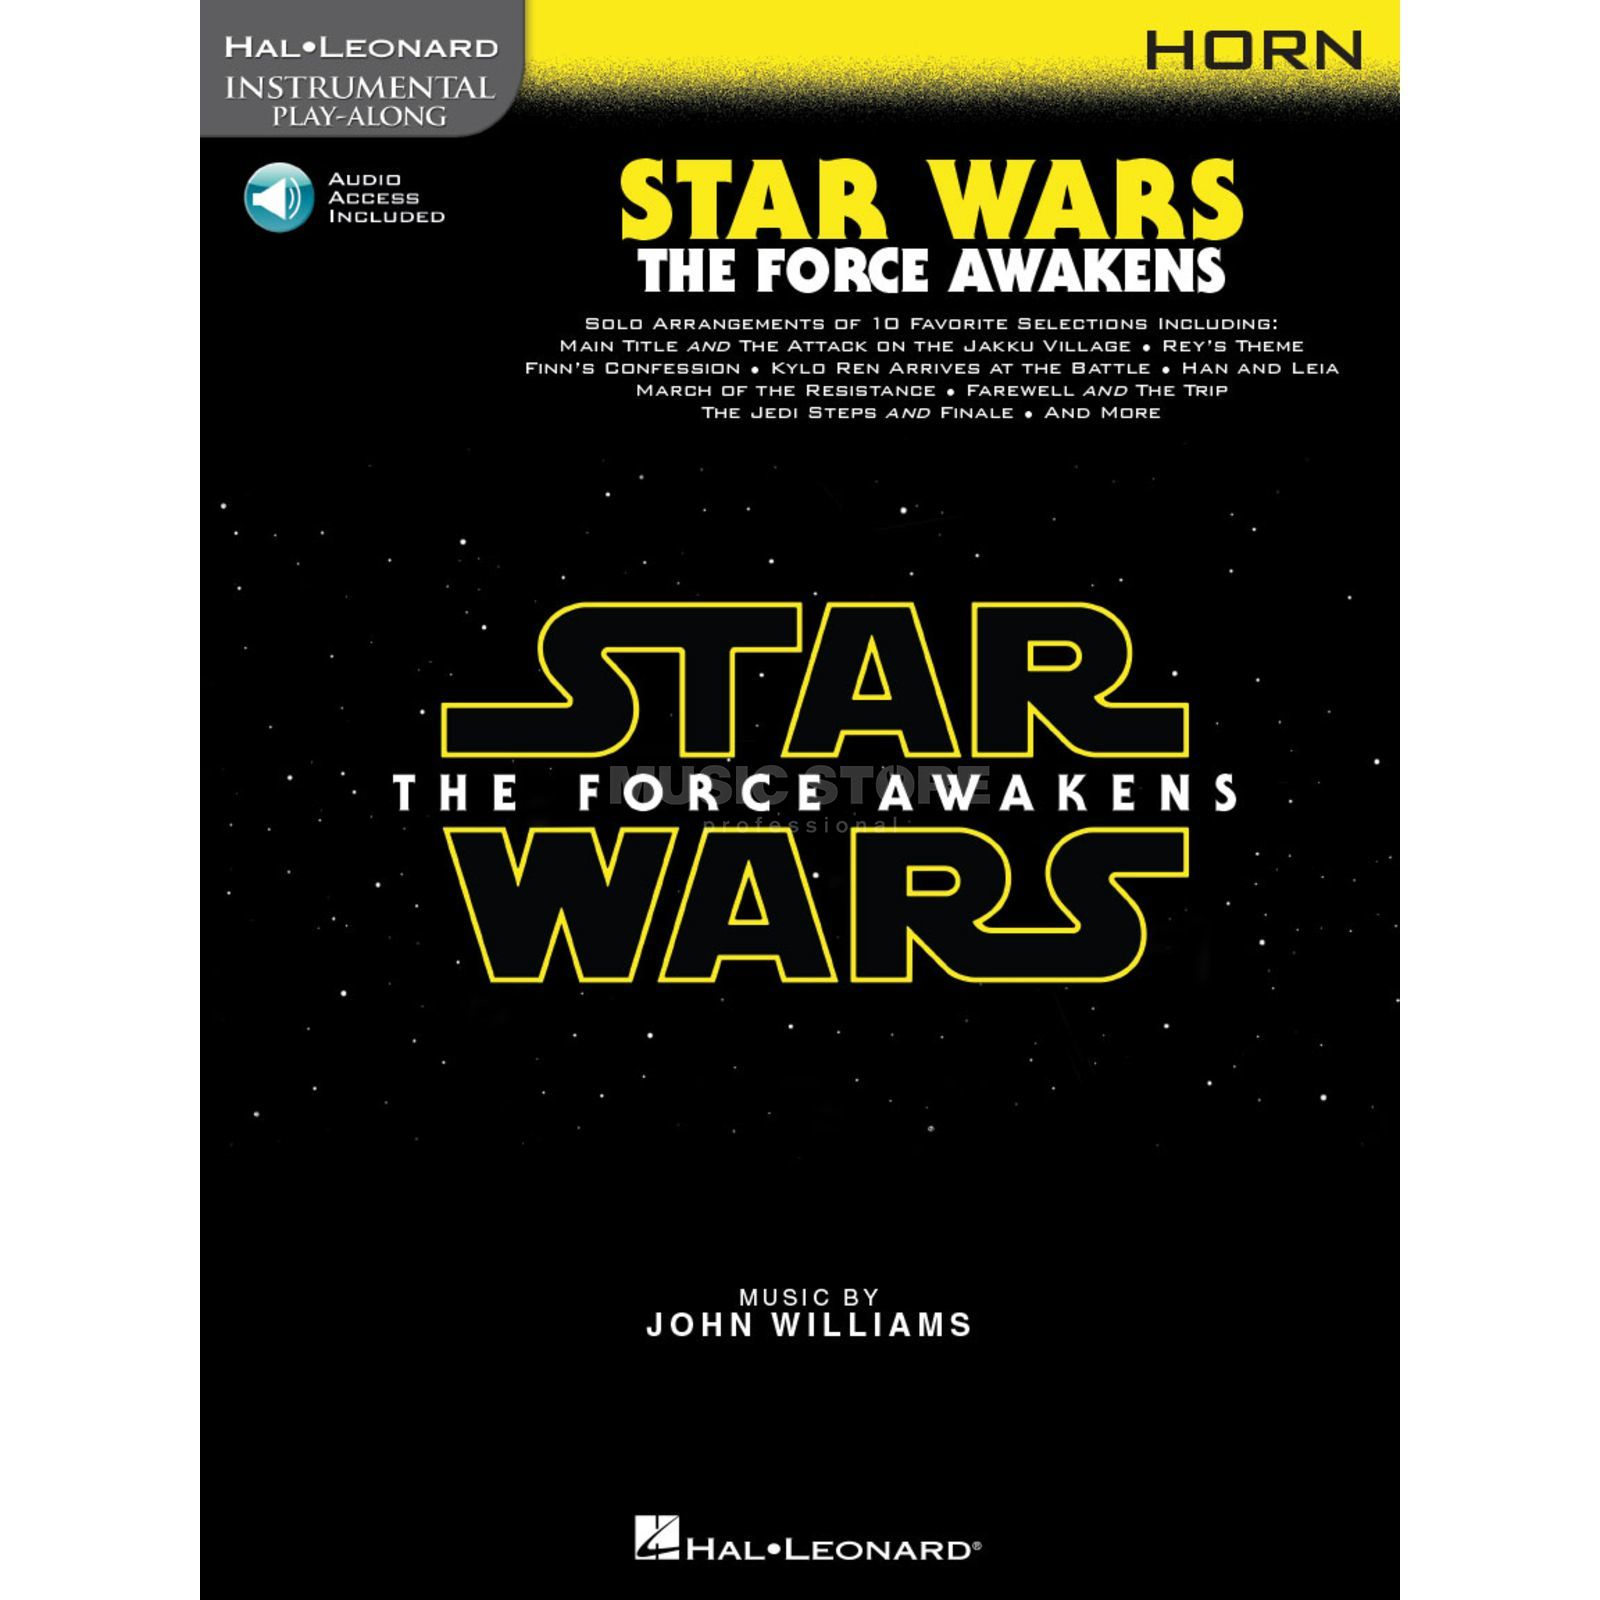 Hal Leonard Instrumental Play-Along: Star Wars - The Force Awakens - Horn Produktbild